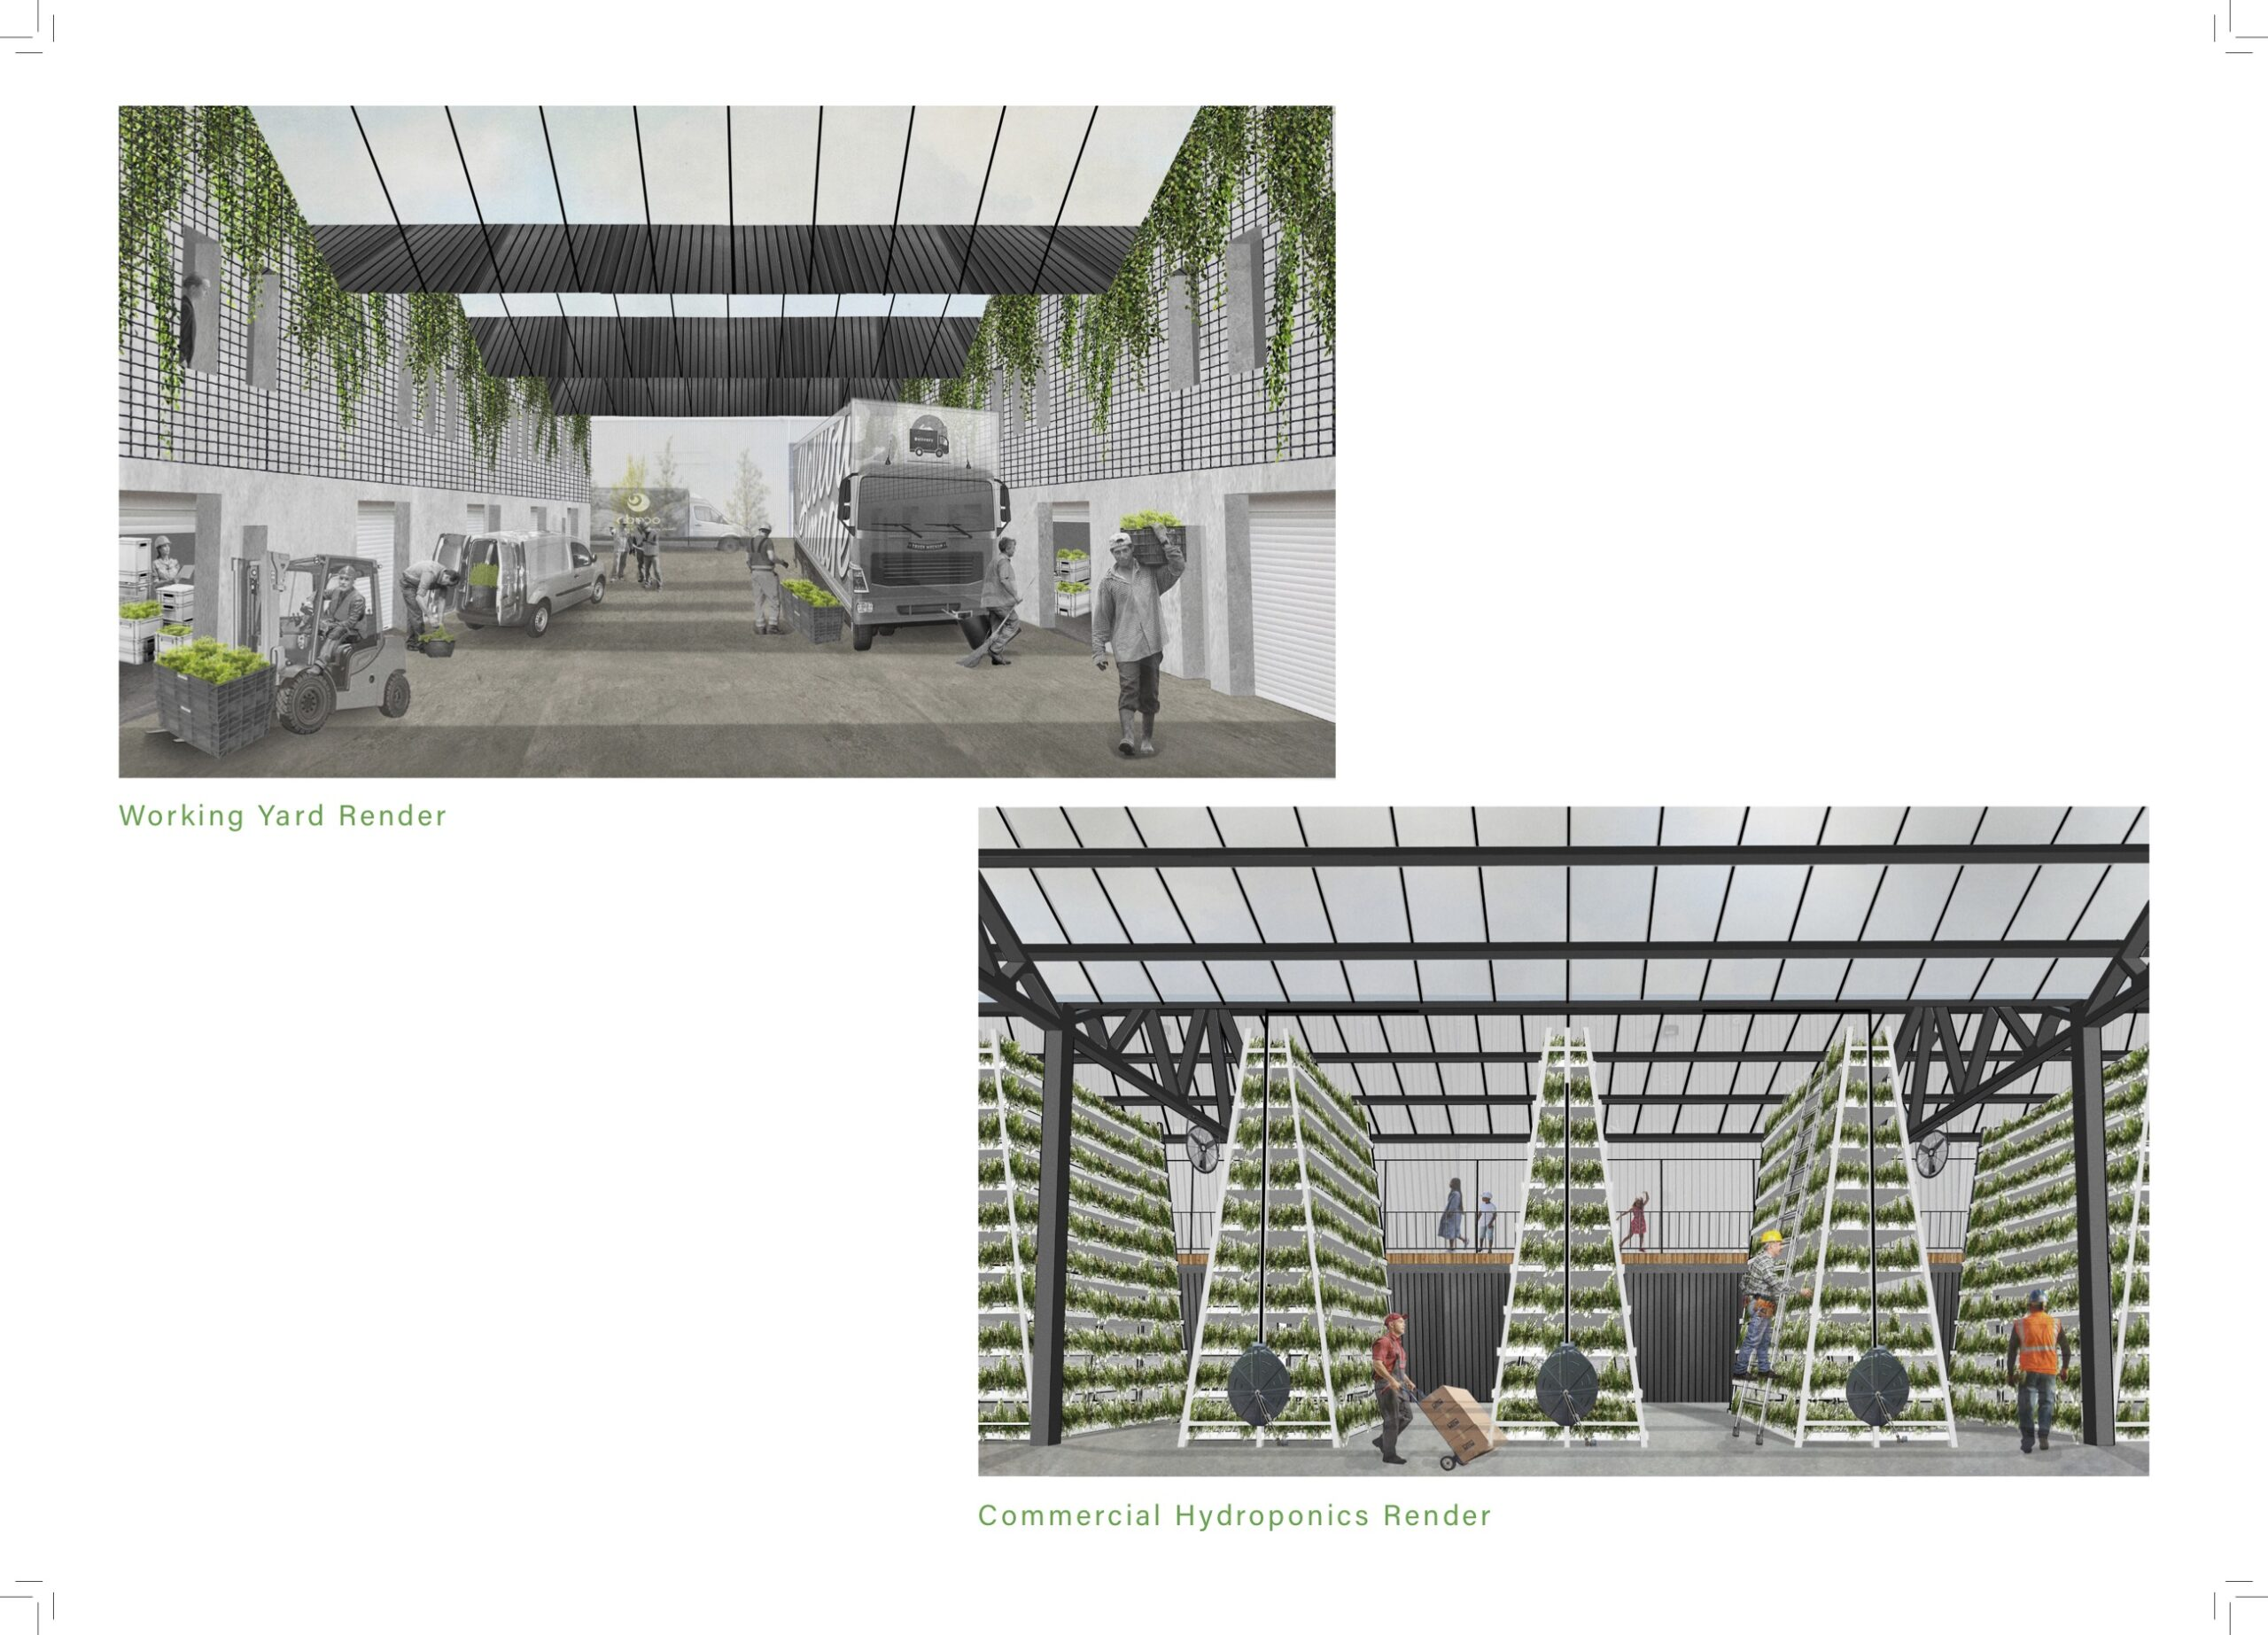 a render illustrating the rooves including the glass panels. The other render shows the vertical hydroponic stalls in the hall.